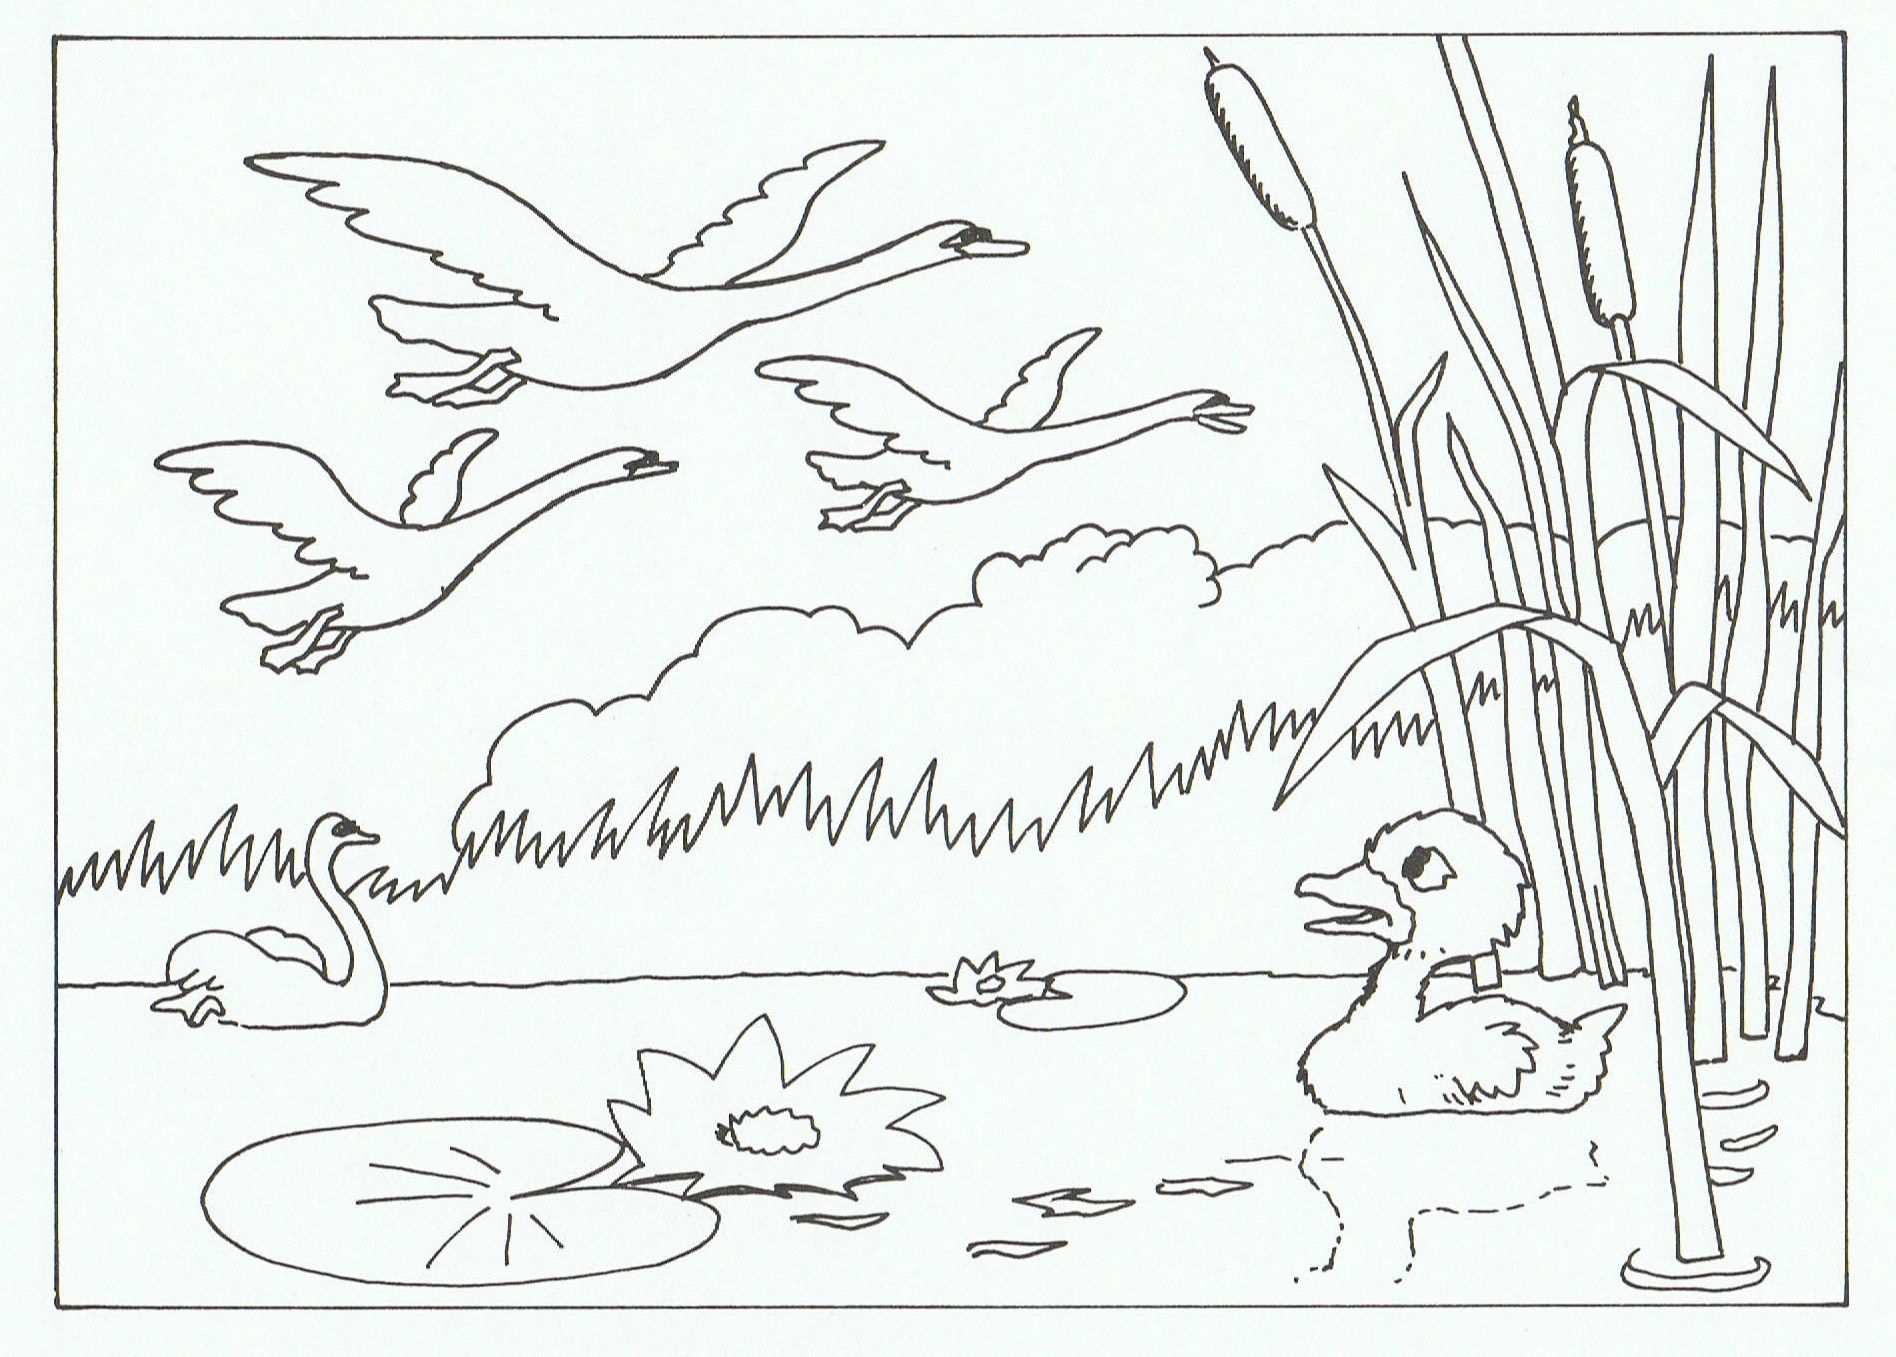 Free coloring pages for the ugly duckling - The Ugly Duckling